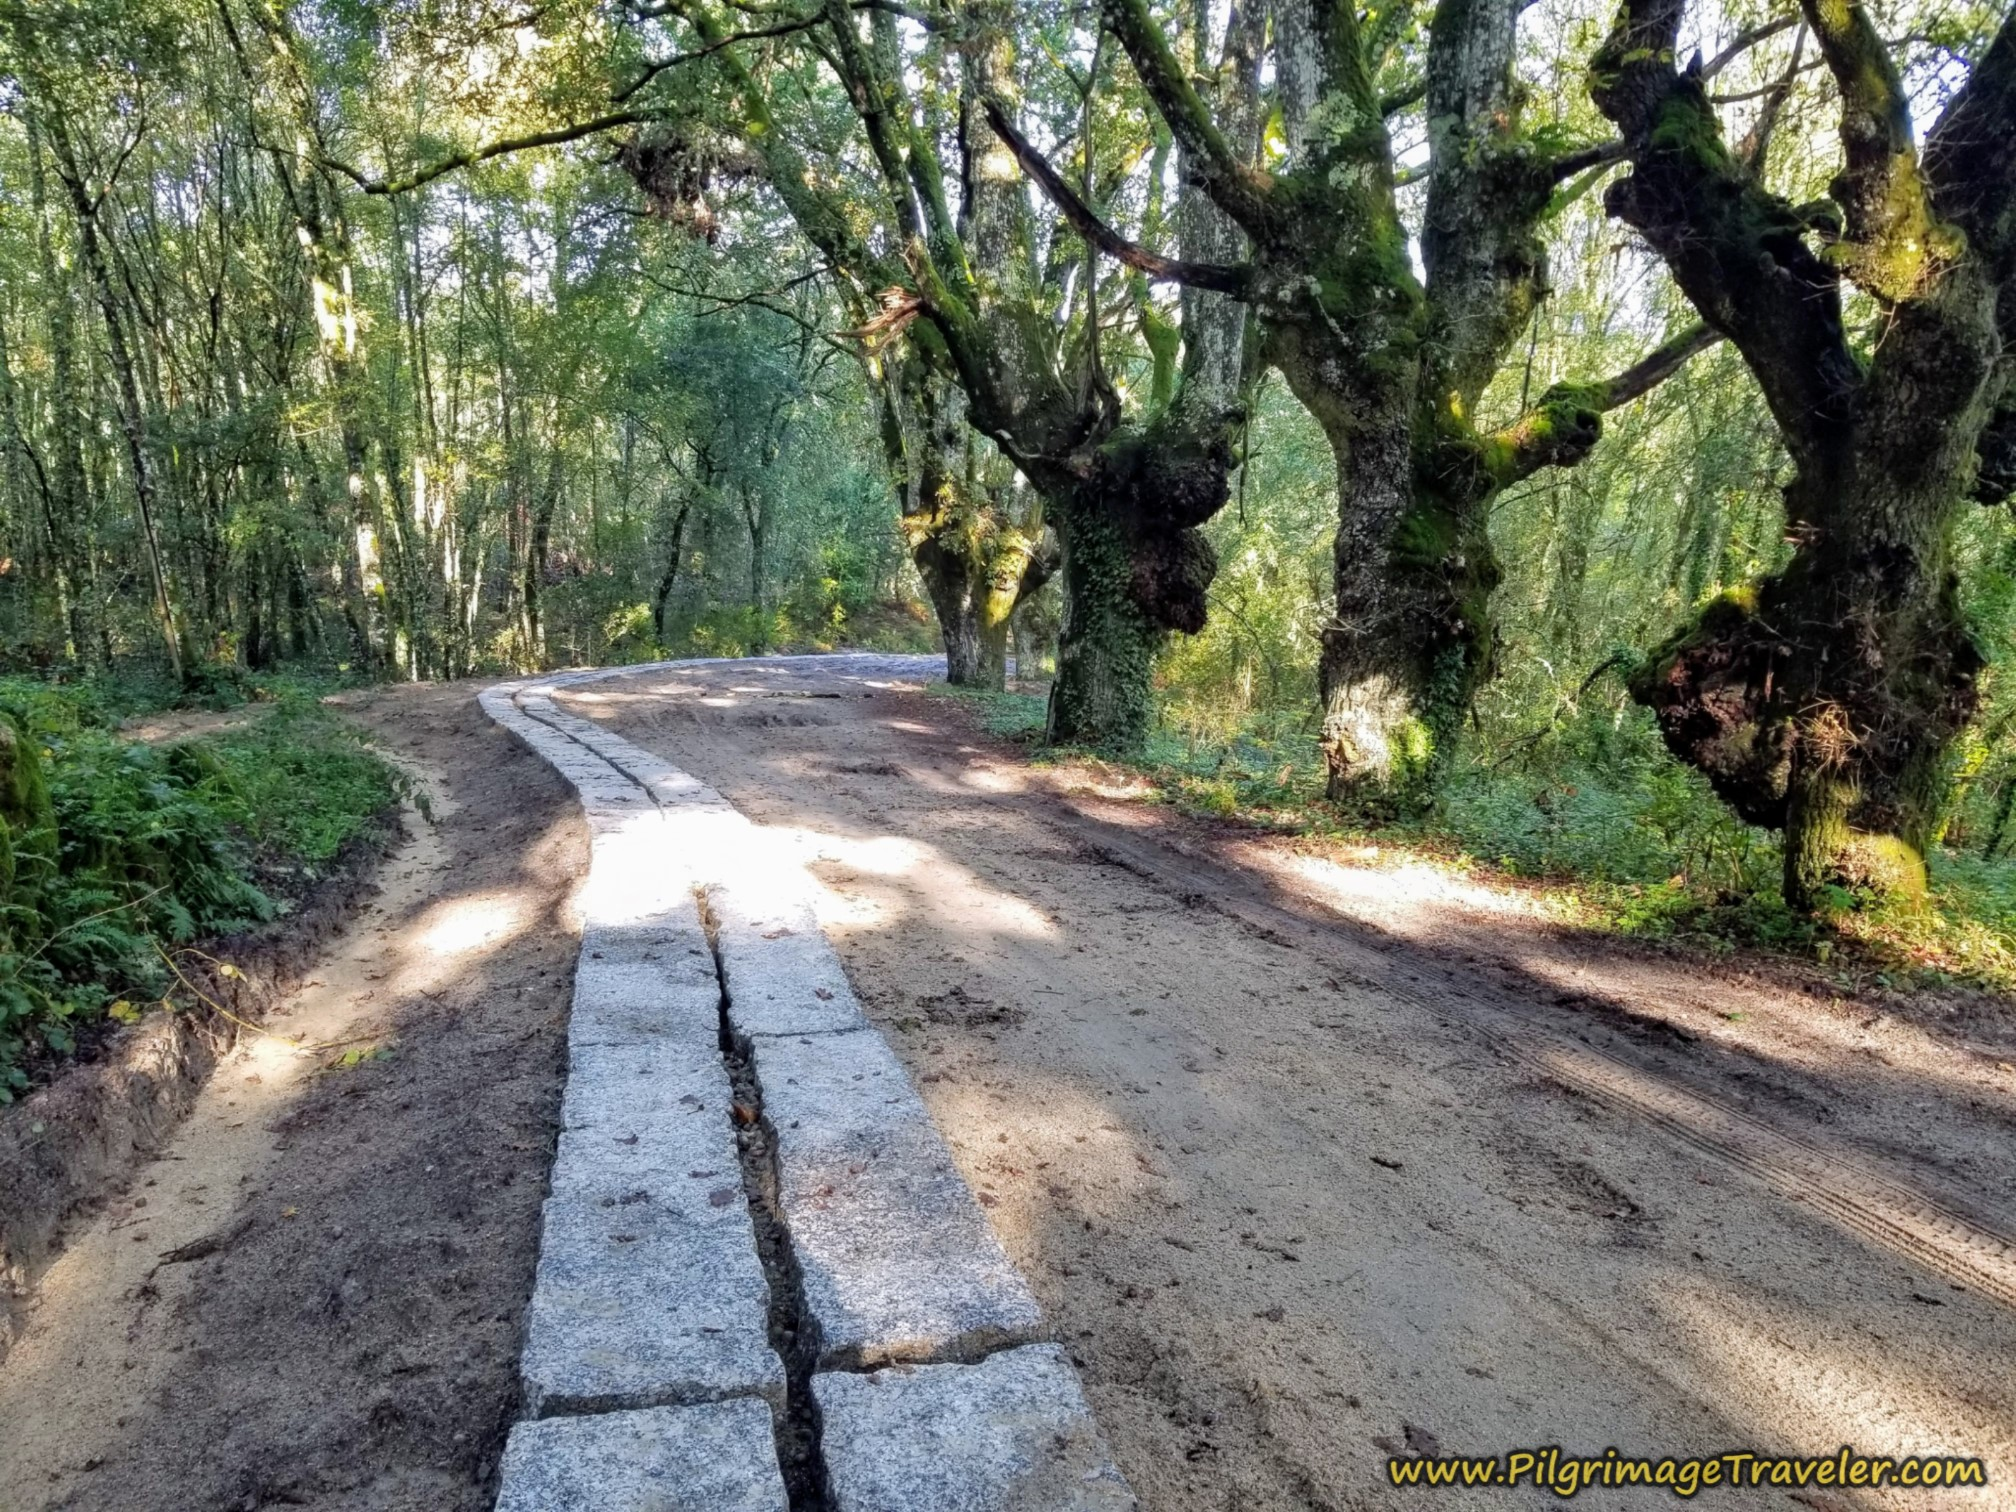 Improved Lane Through Forest